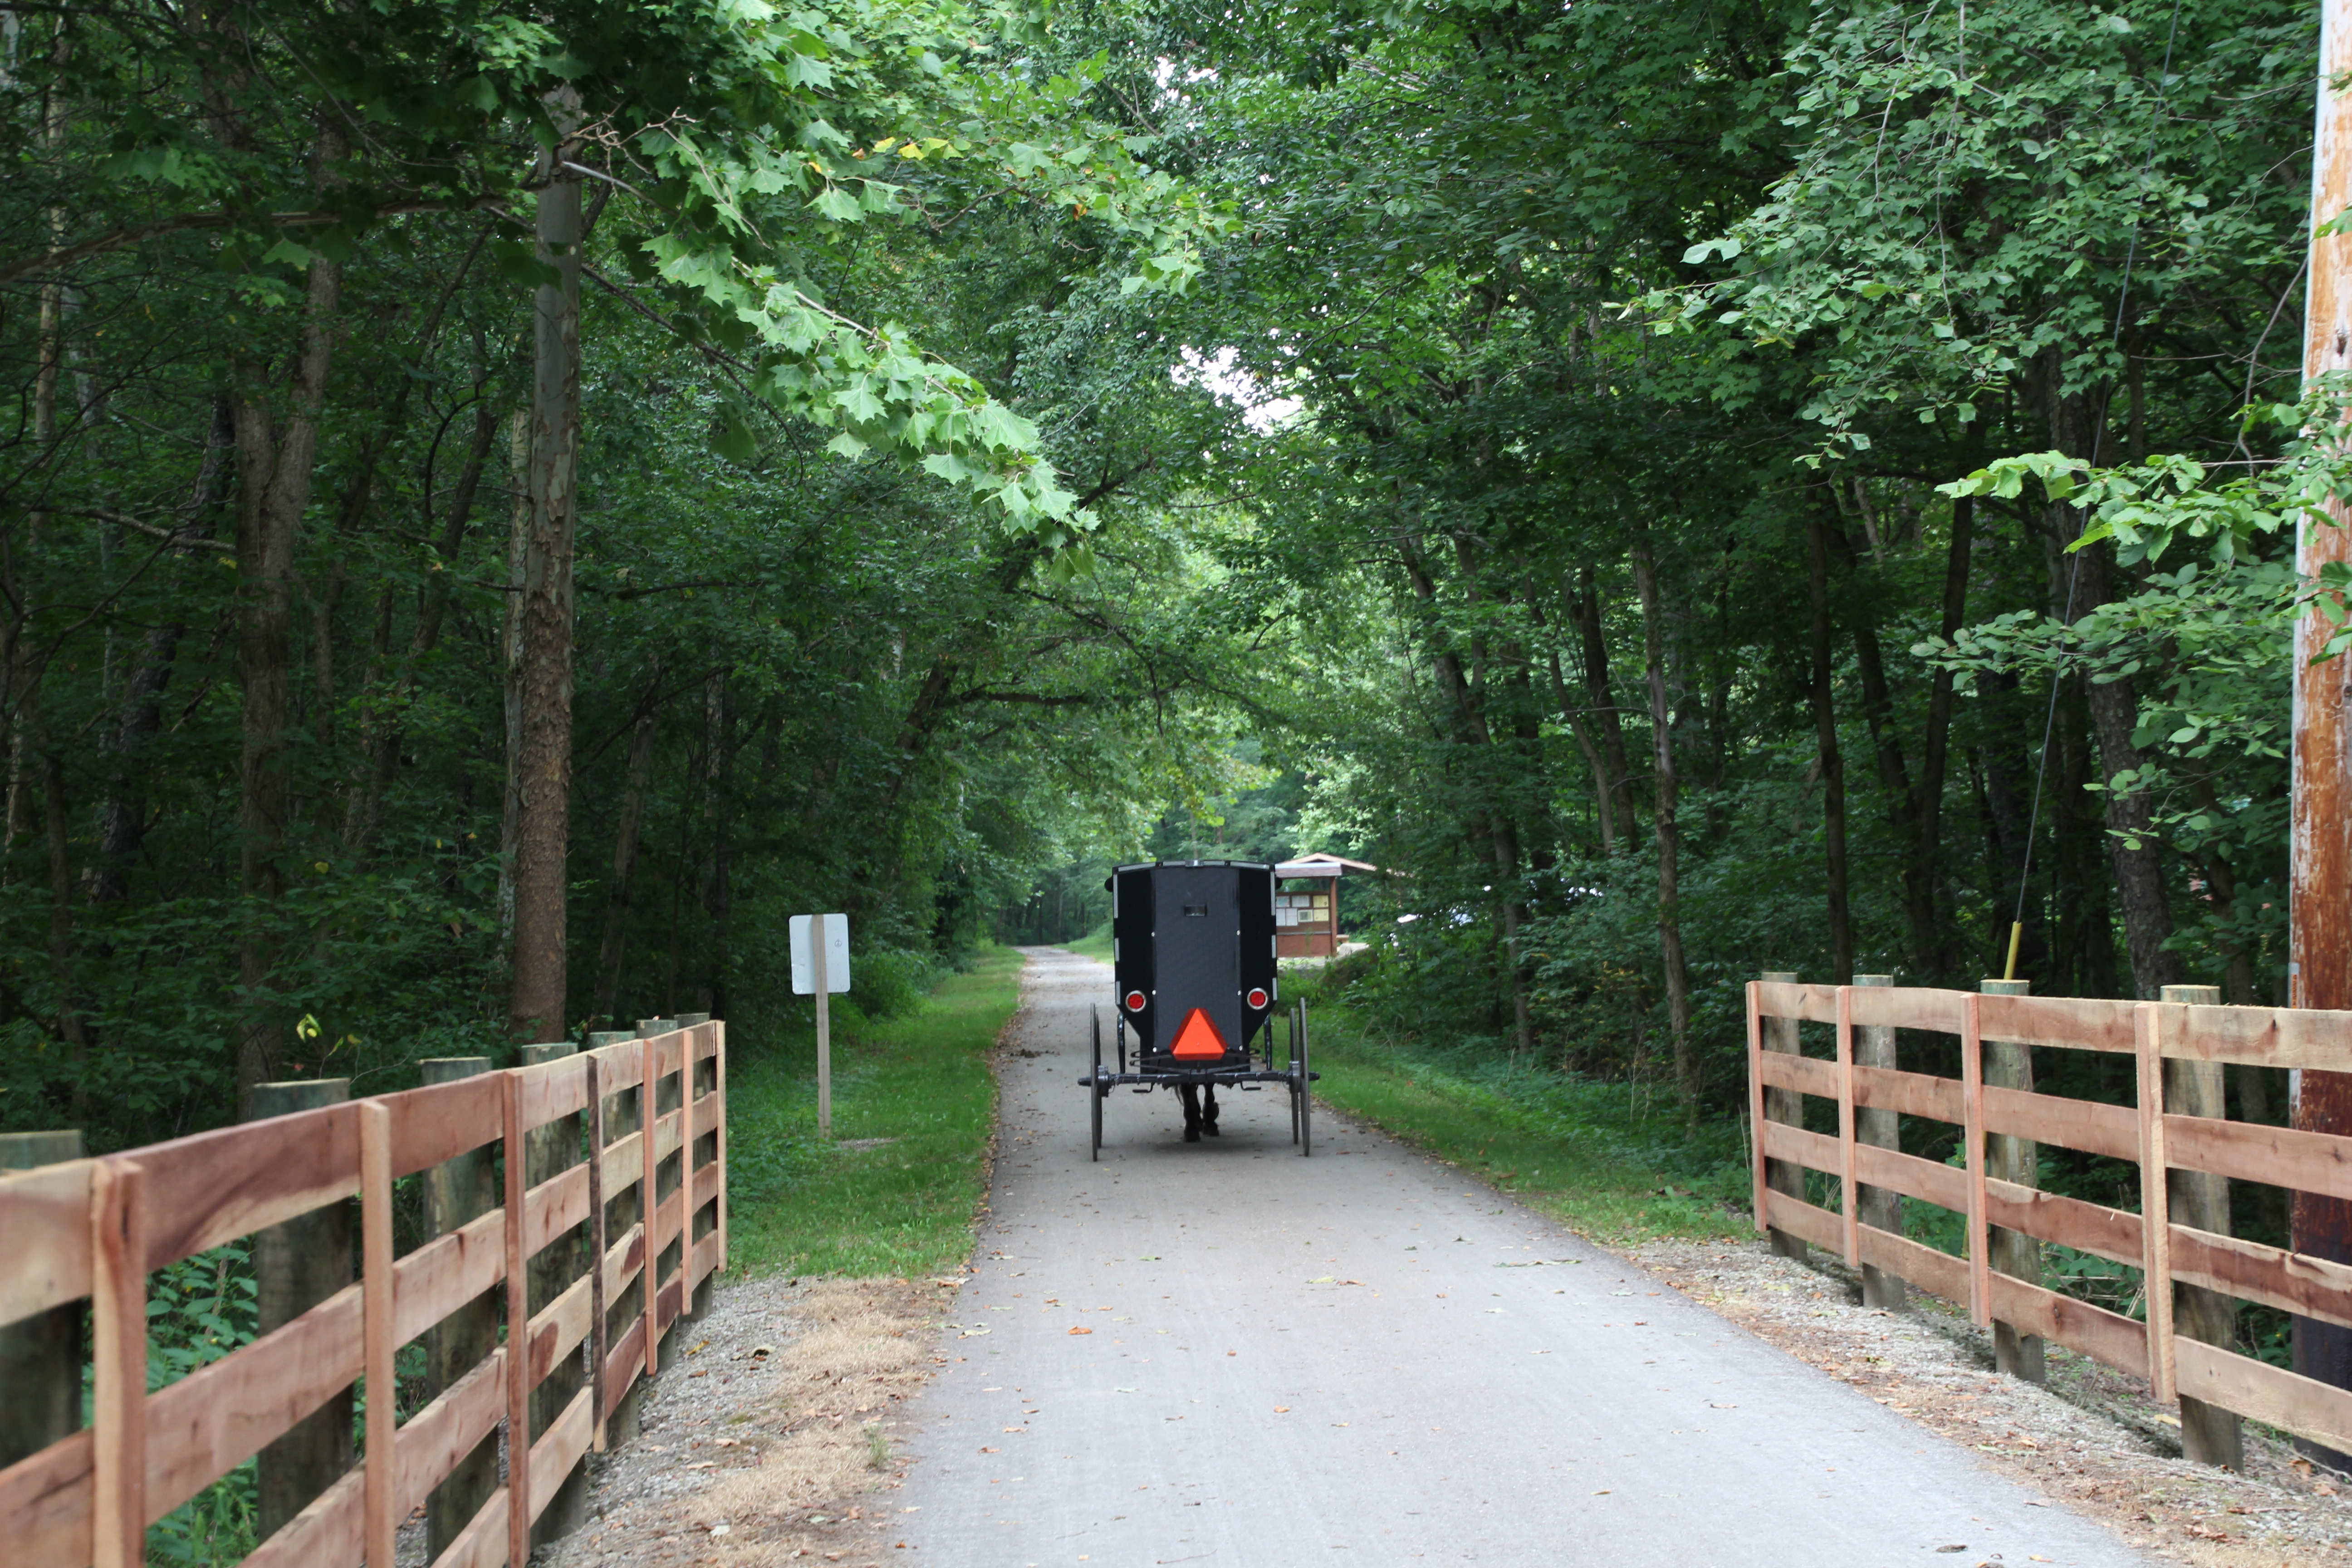 Ohio amish country activities ohio girl travels for Amish country things to do